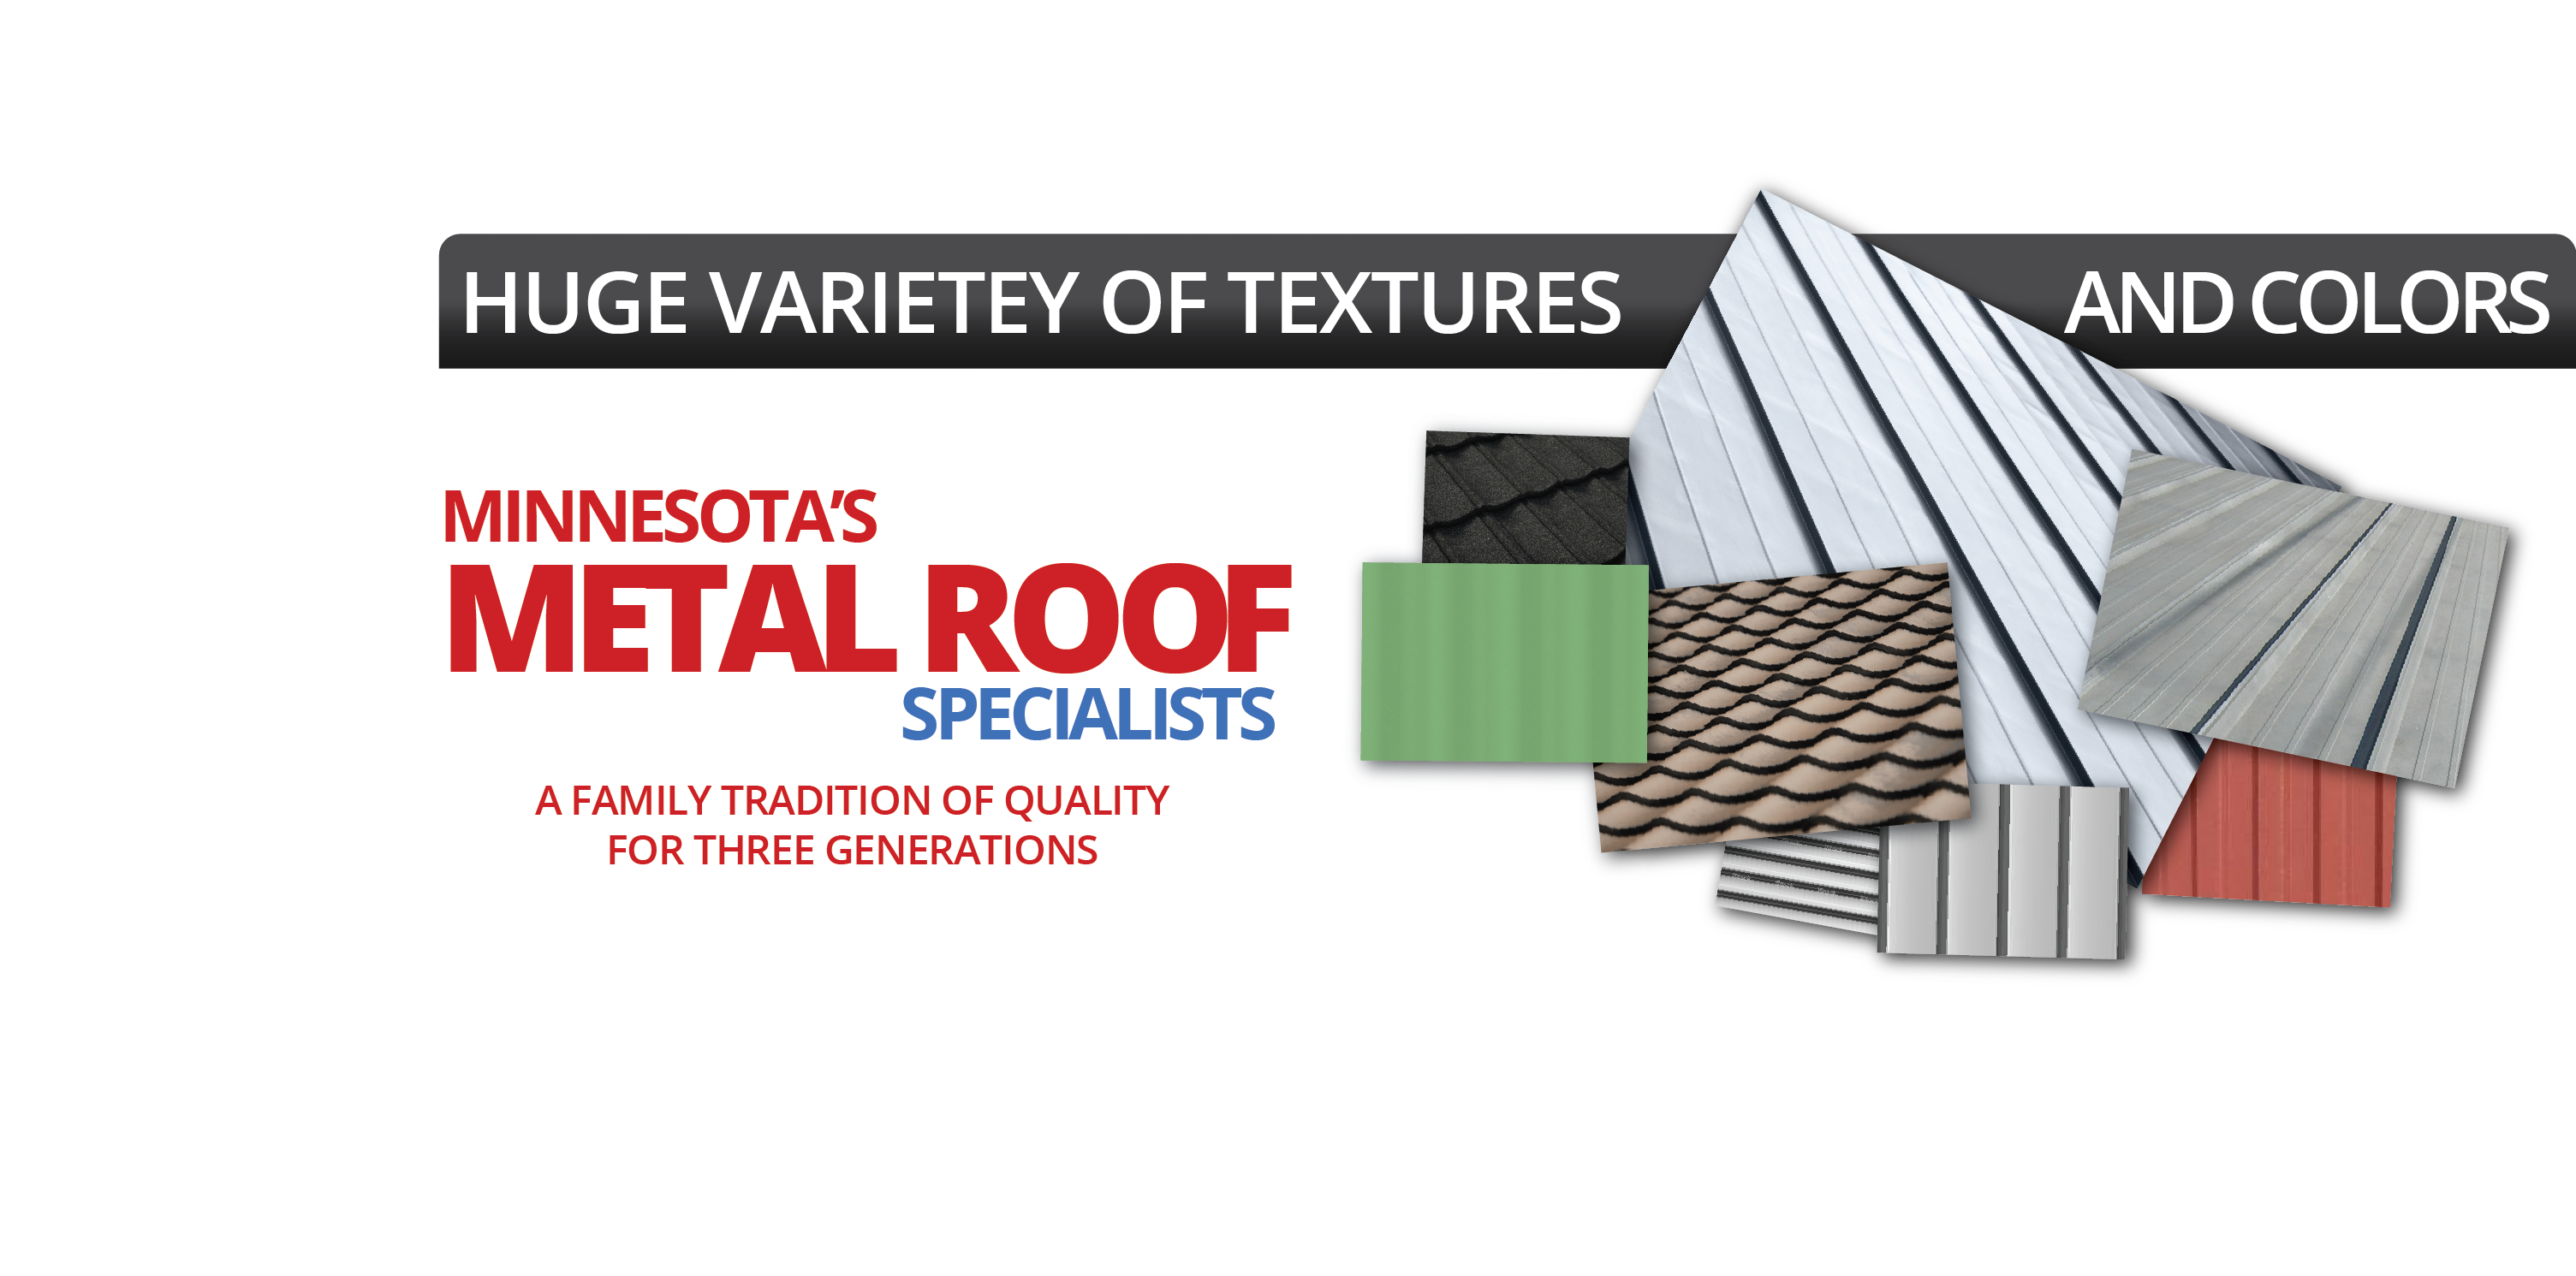 Huge varietey of textures and colors. Minnesota's Metal Roof Specialists: A family tradition of quality for three generations.